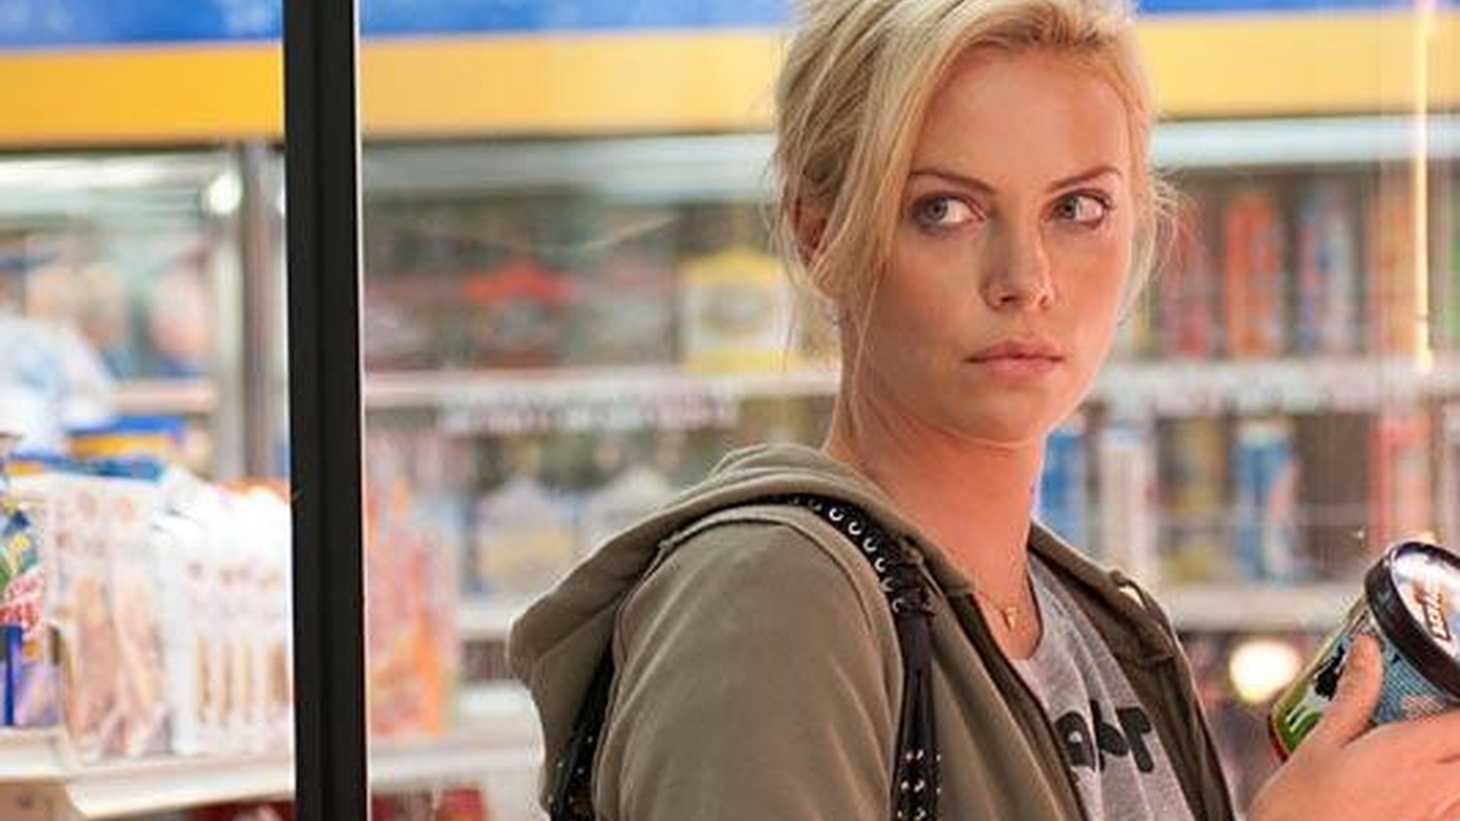 Joe Morgenstern on Young Adult, starring Charlize Theron, the latest from the filmmaker and writer who brought Juno to the screen.